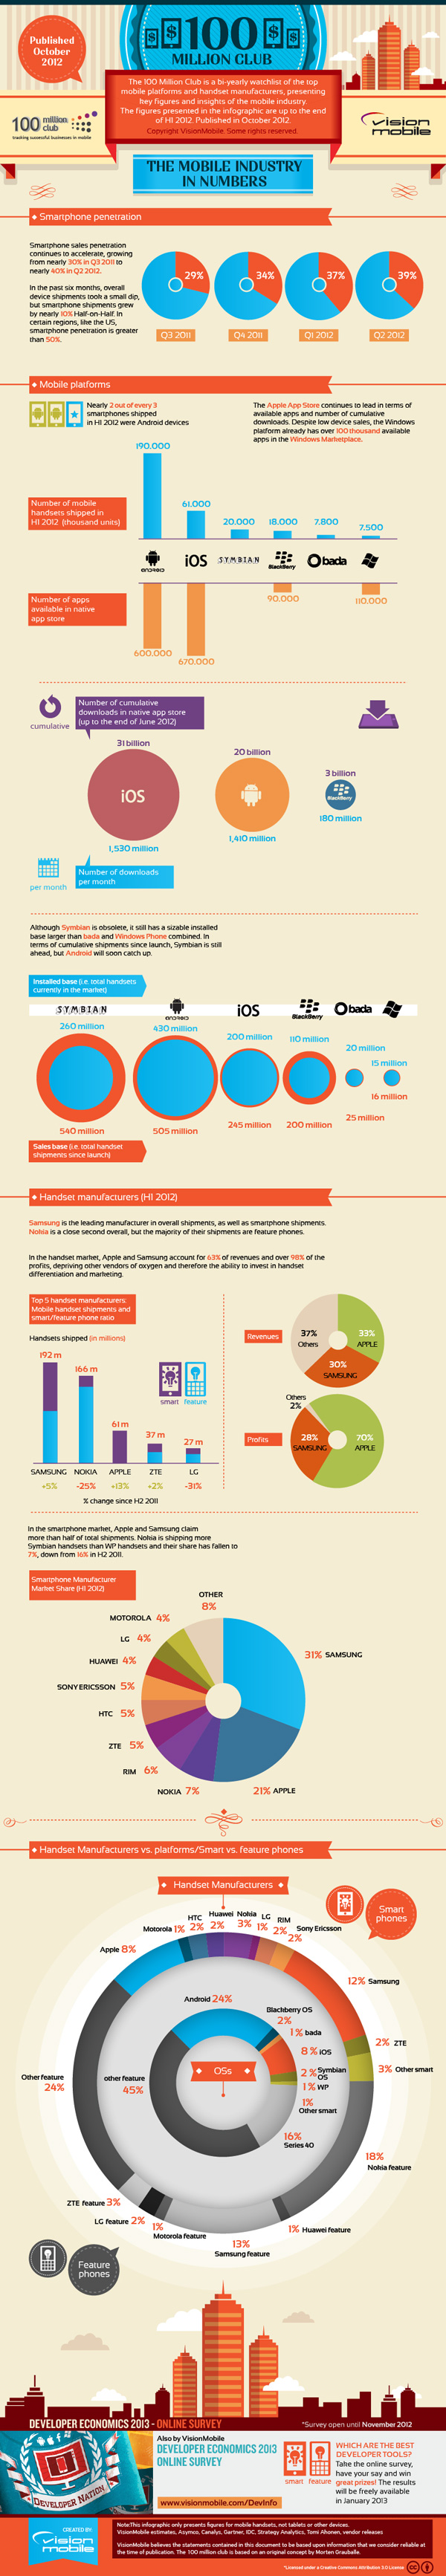 mobile-trends-infographic